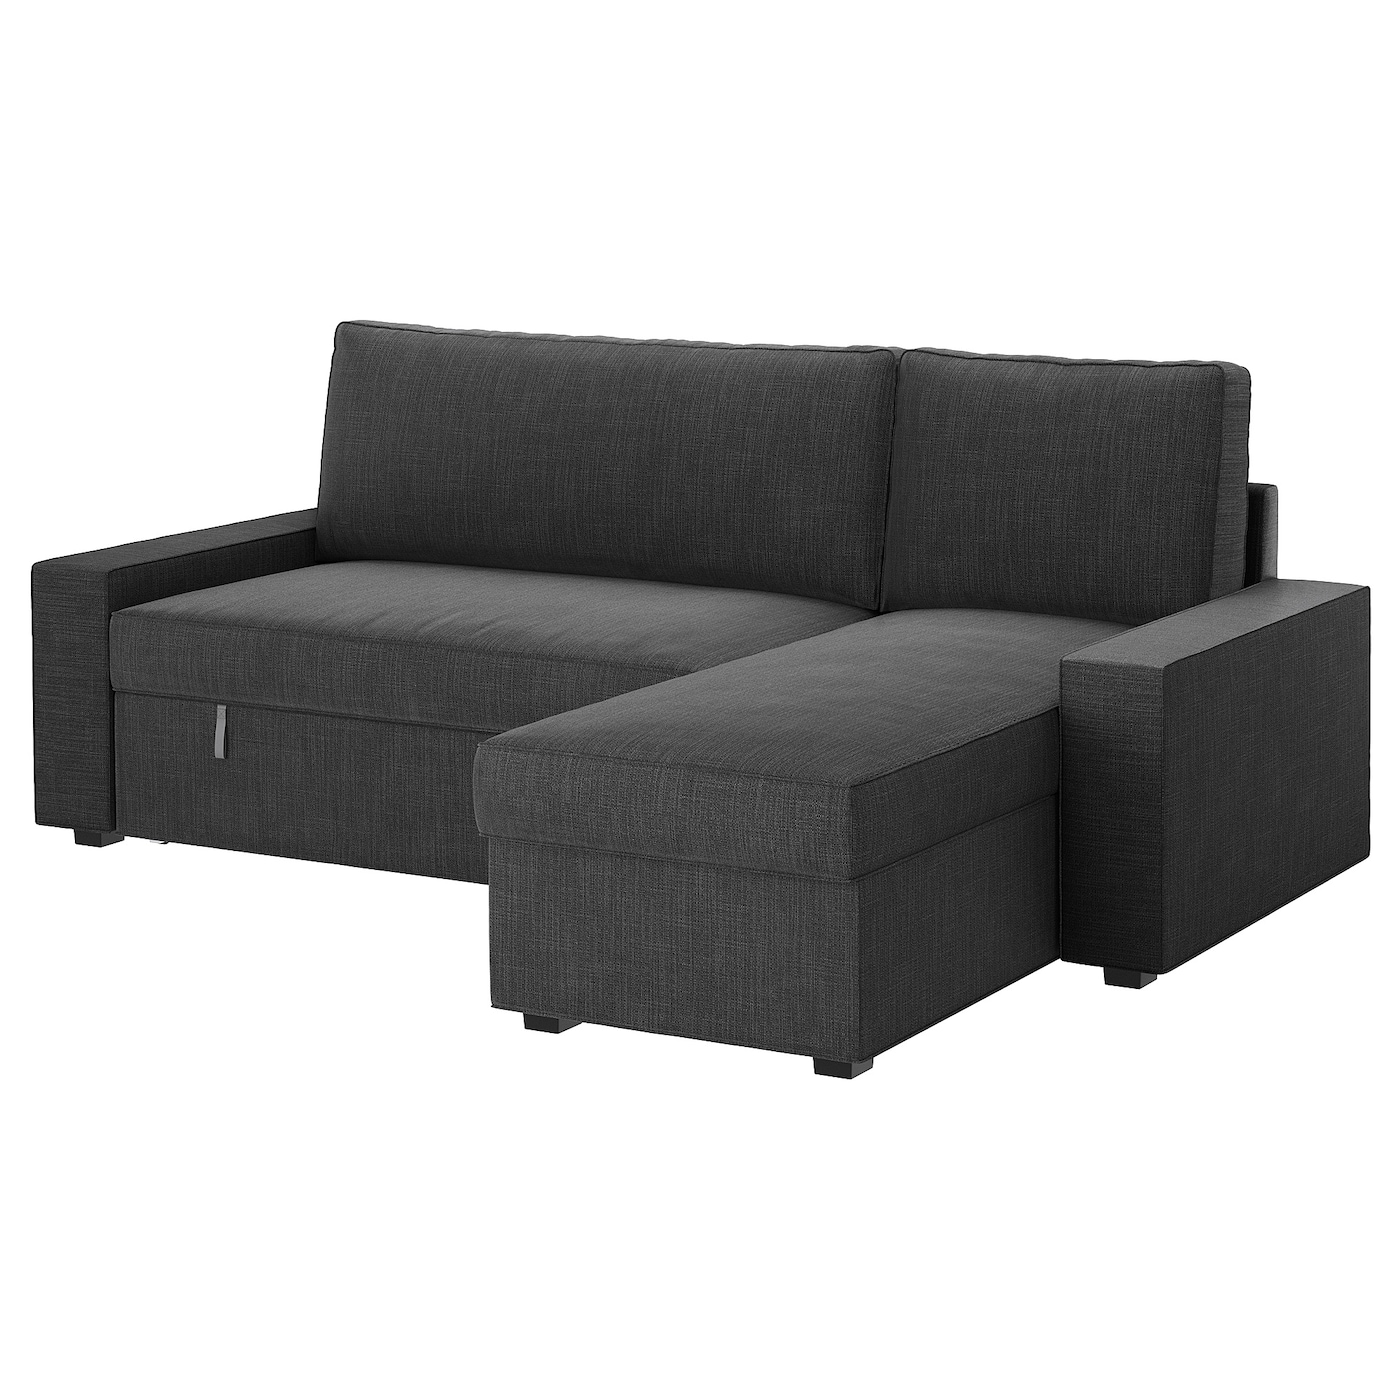 Vilasund sofa bed with chaise longue hillared anthracite - Chaise longue exterieur ikea ...